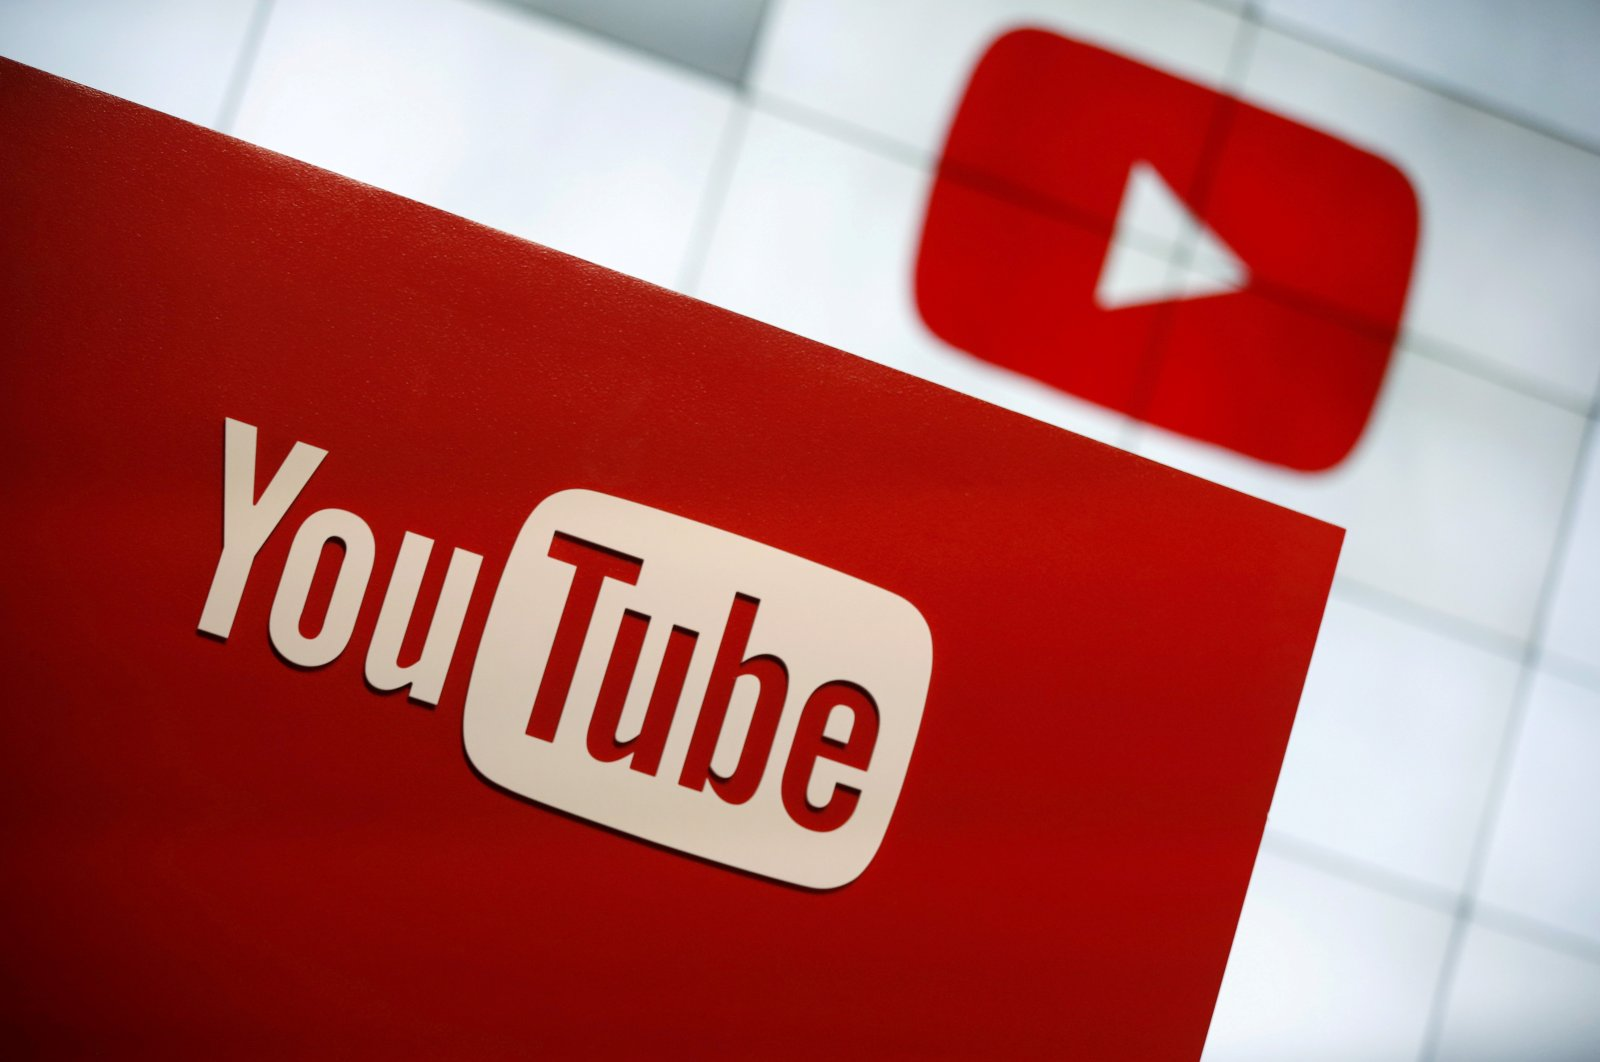 YouTube logo at the YouTube Space LA in Playa Del Rey, Los Angeles, California, U.S., Oct. 21, 2015. (Reuters Photo)